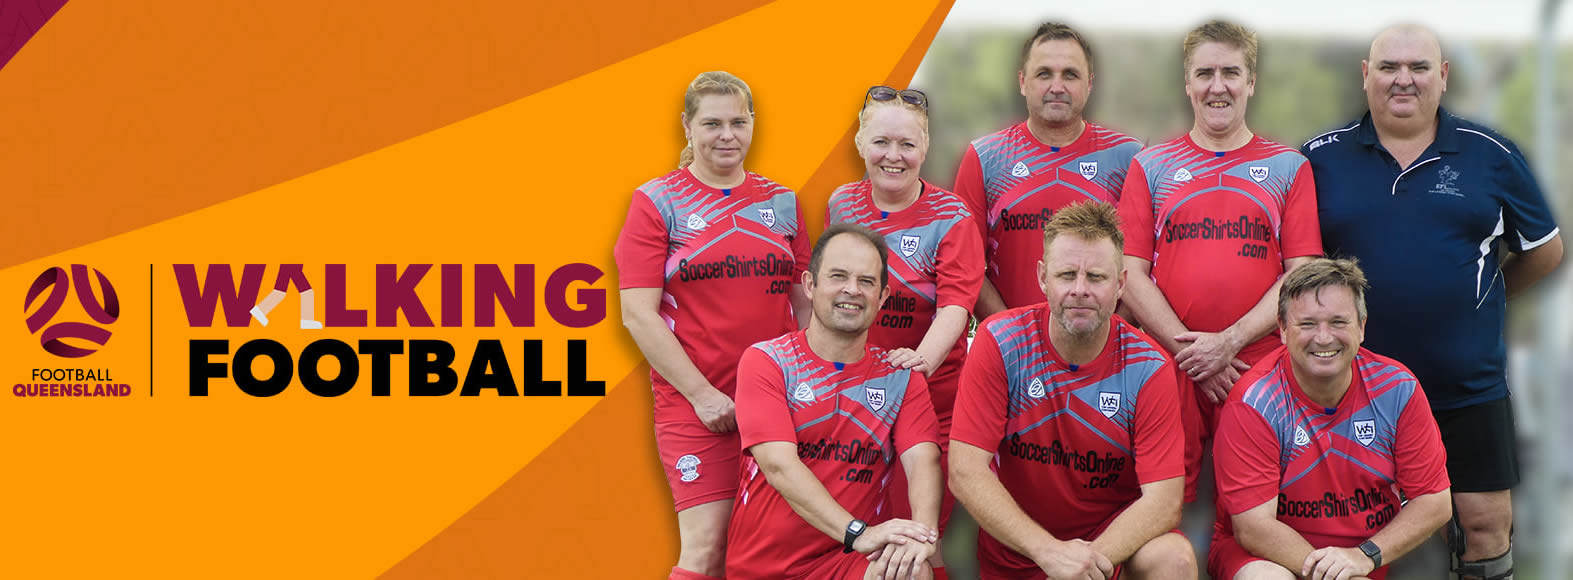 Baringa Walking Football